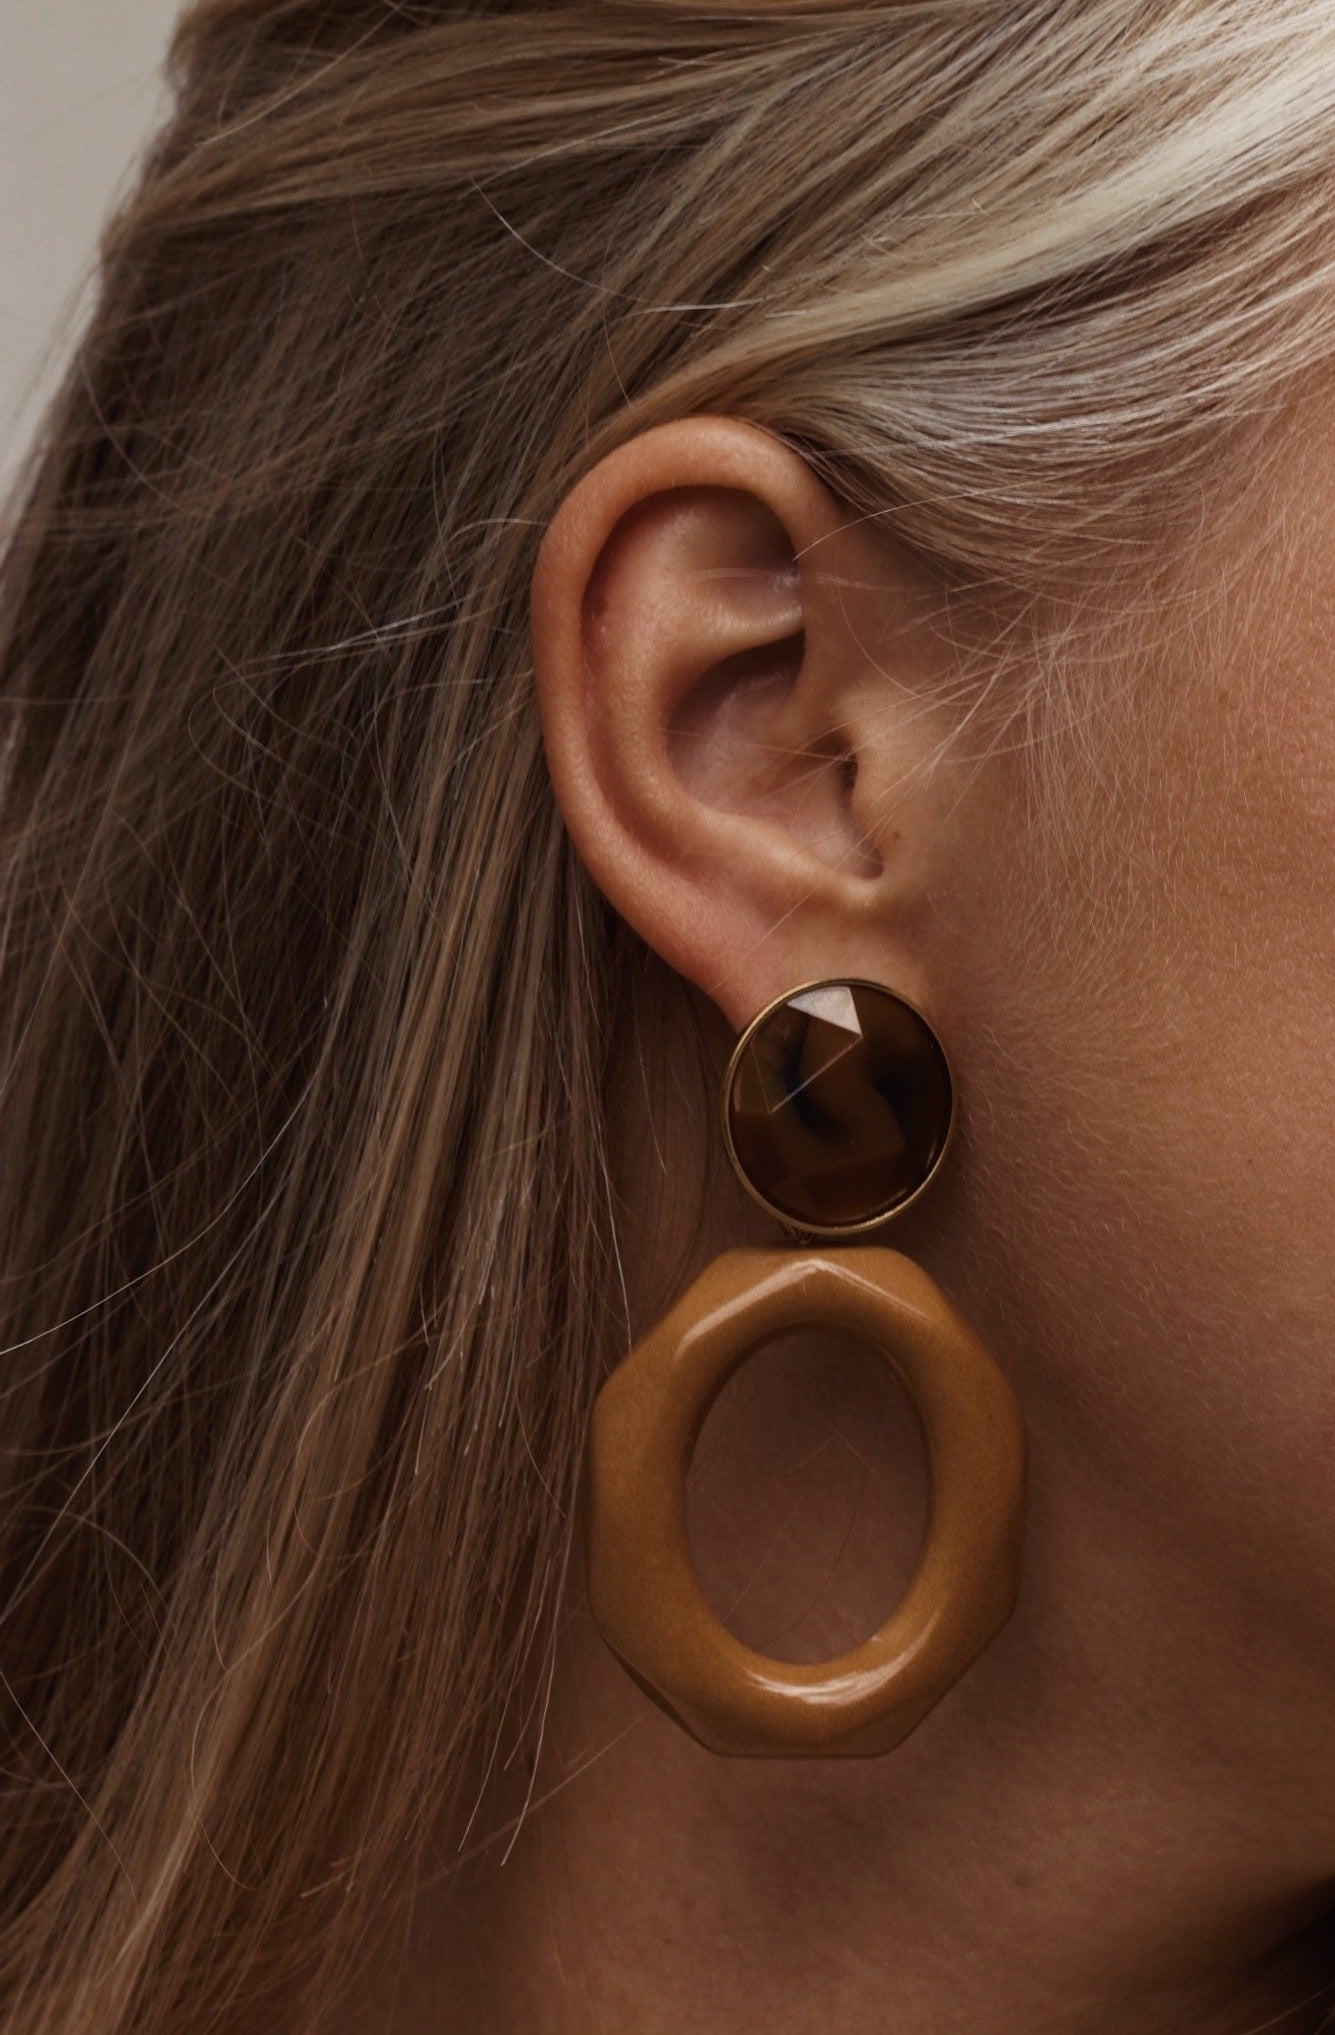 Mary facet large camel earrings